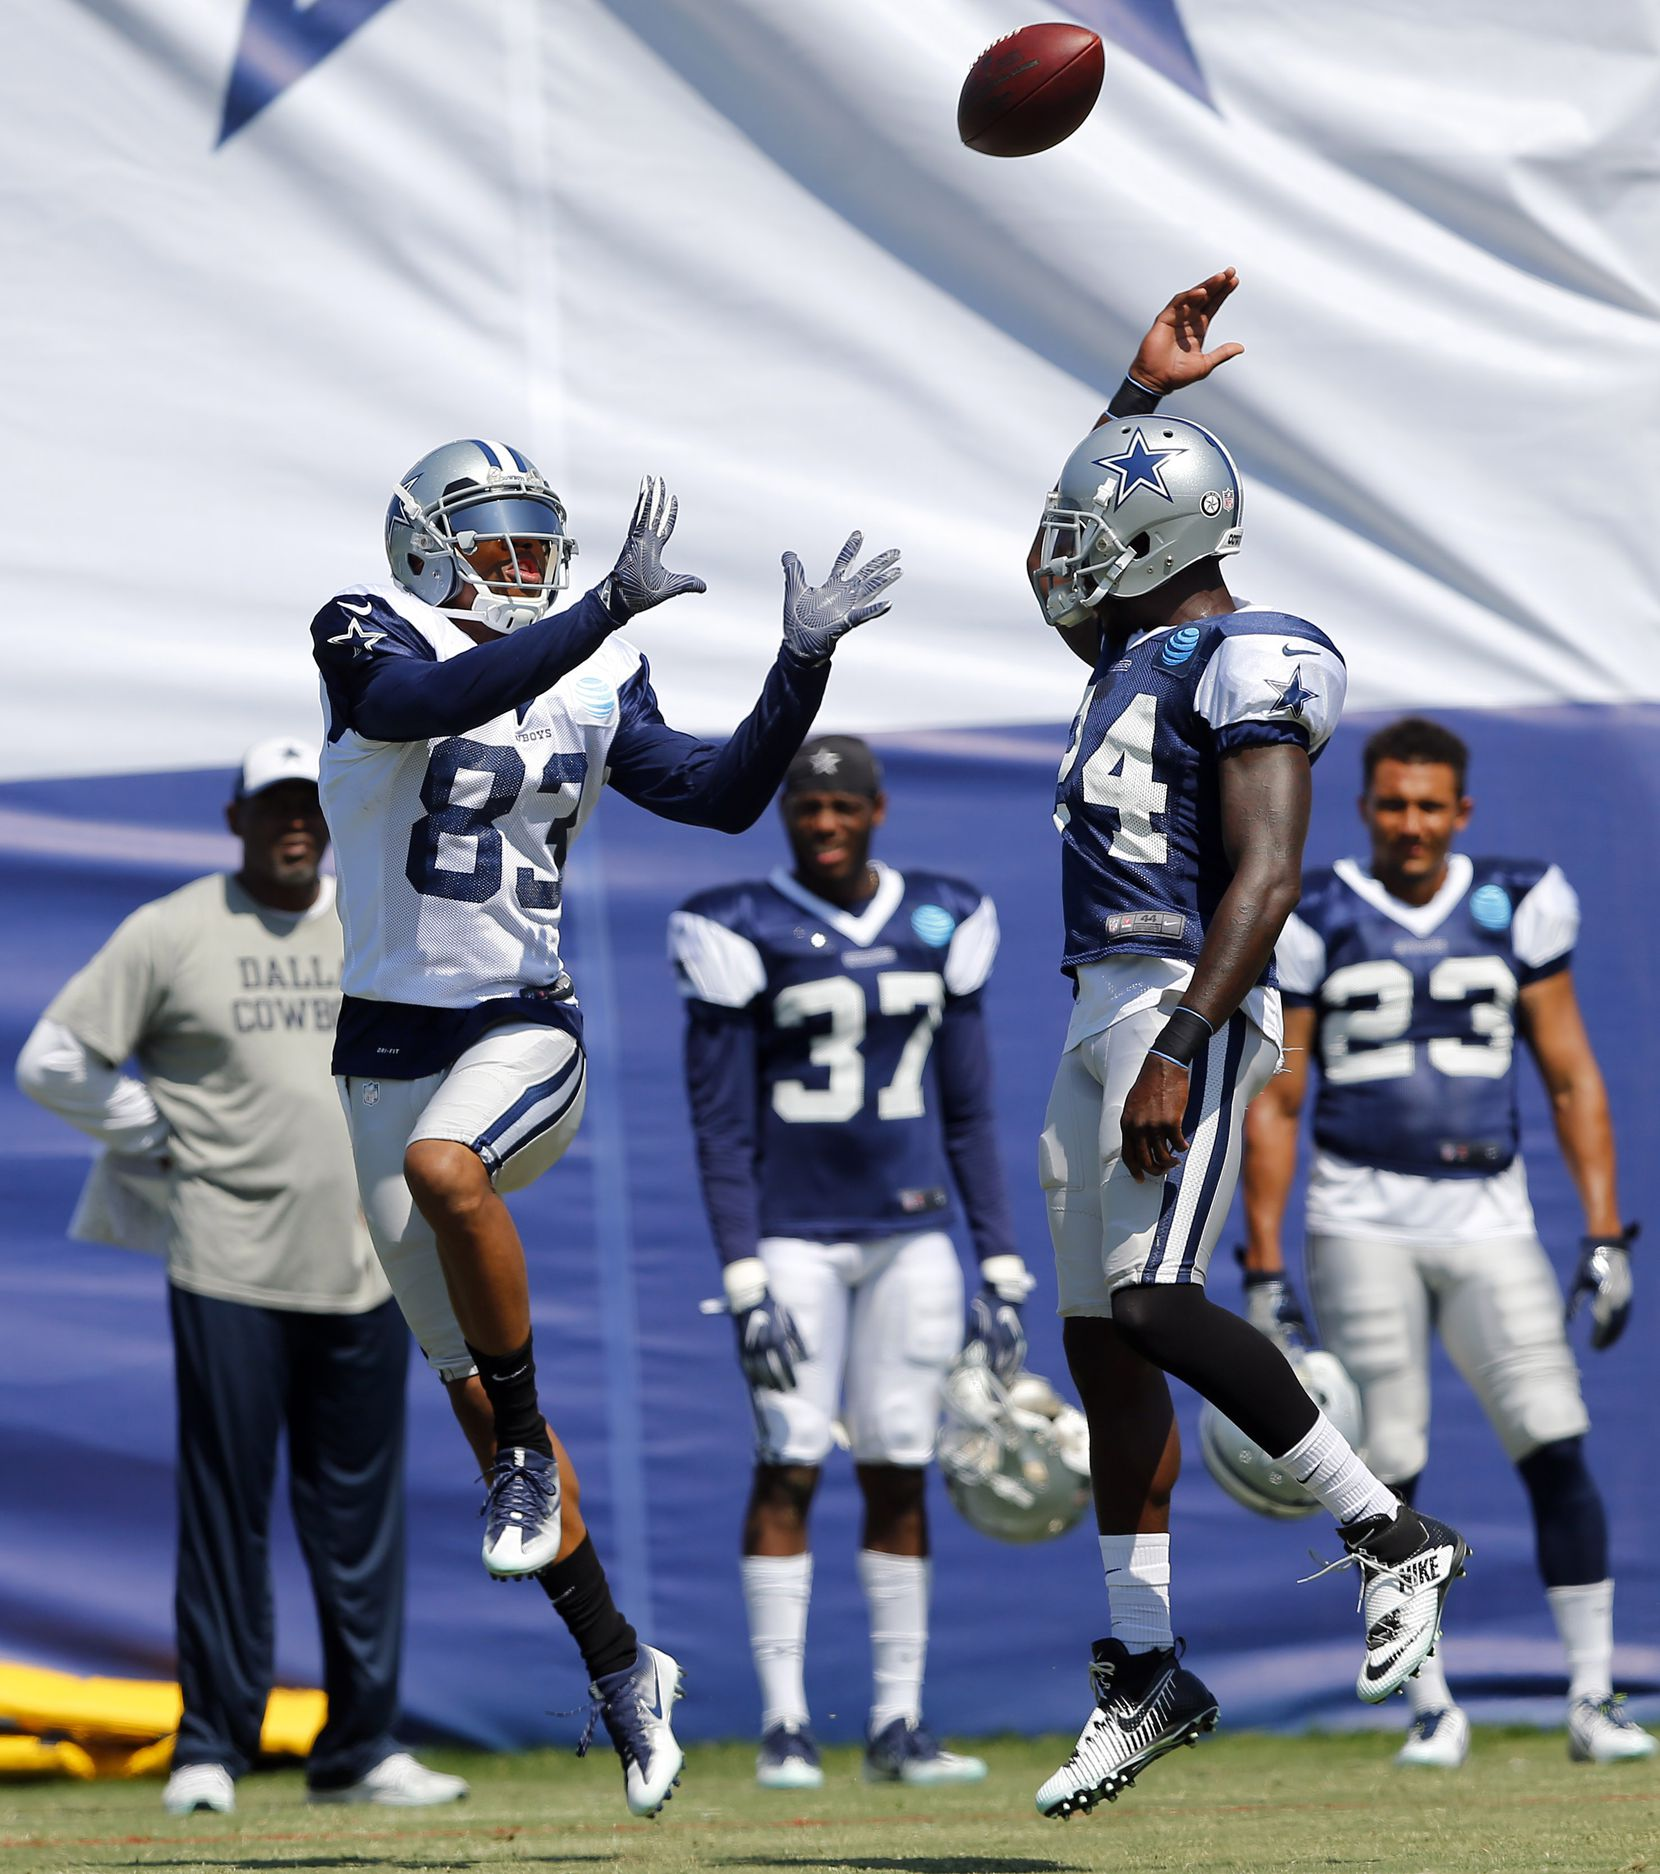 Dallas Cowboys wide receiver Terrance Williams (83) goes up to grab a pass over cornerback Morris Claiborne (24) during morning practice at training camp in Oxnard, California, Thursday, August 11, 2016. (Tom Fox/The Dallas Morning News)